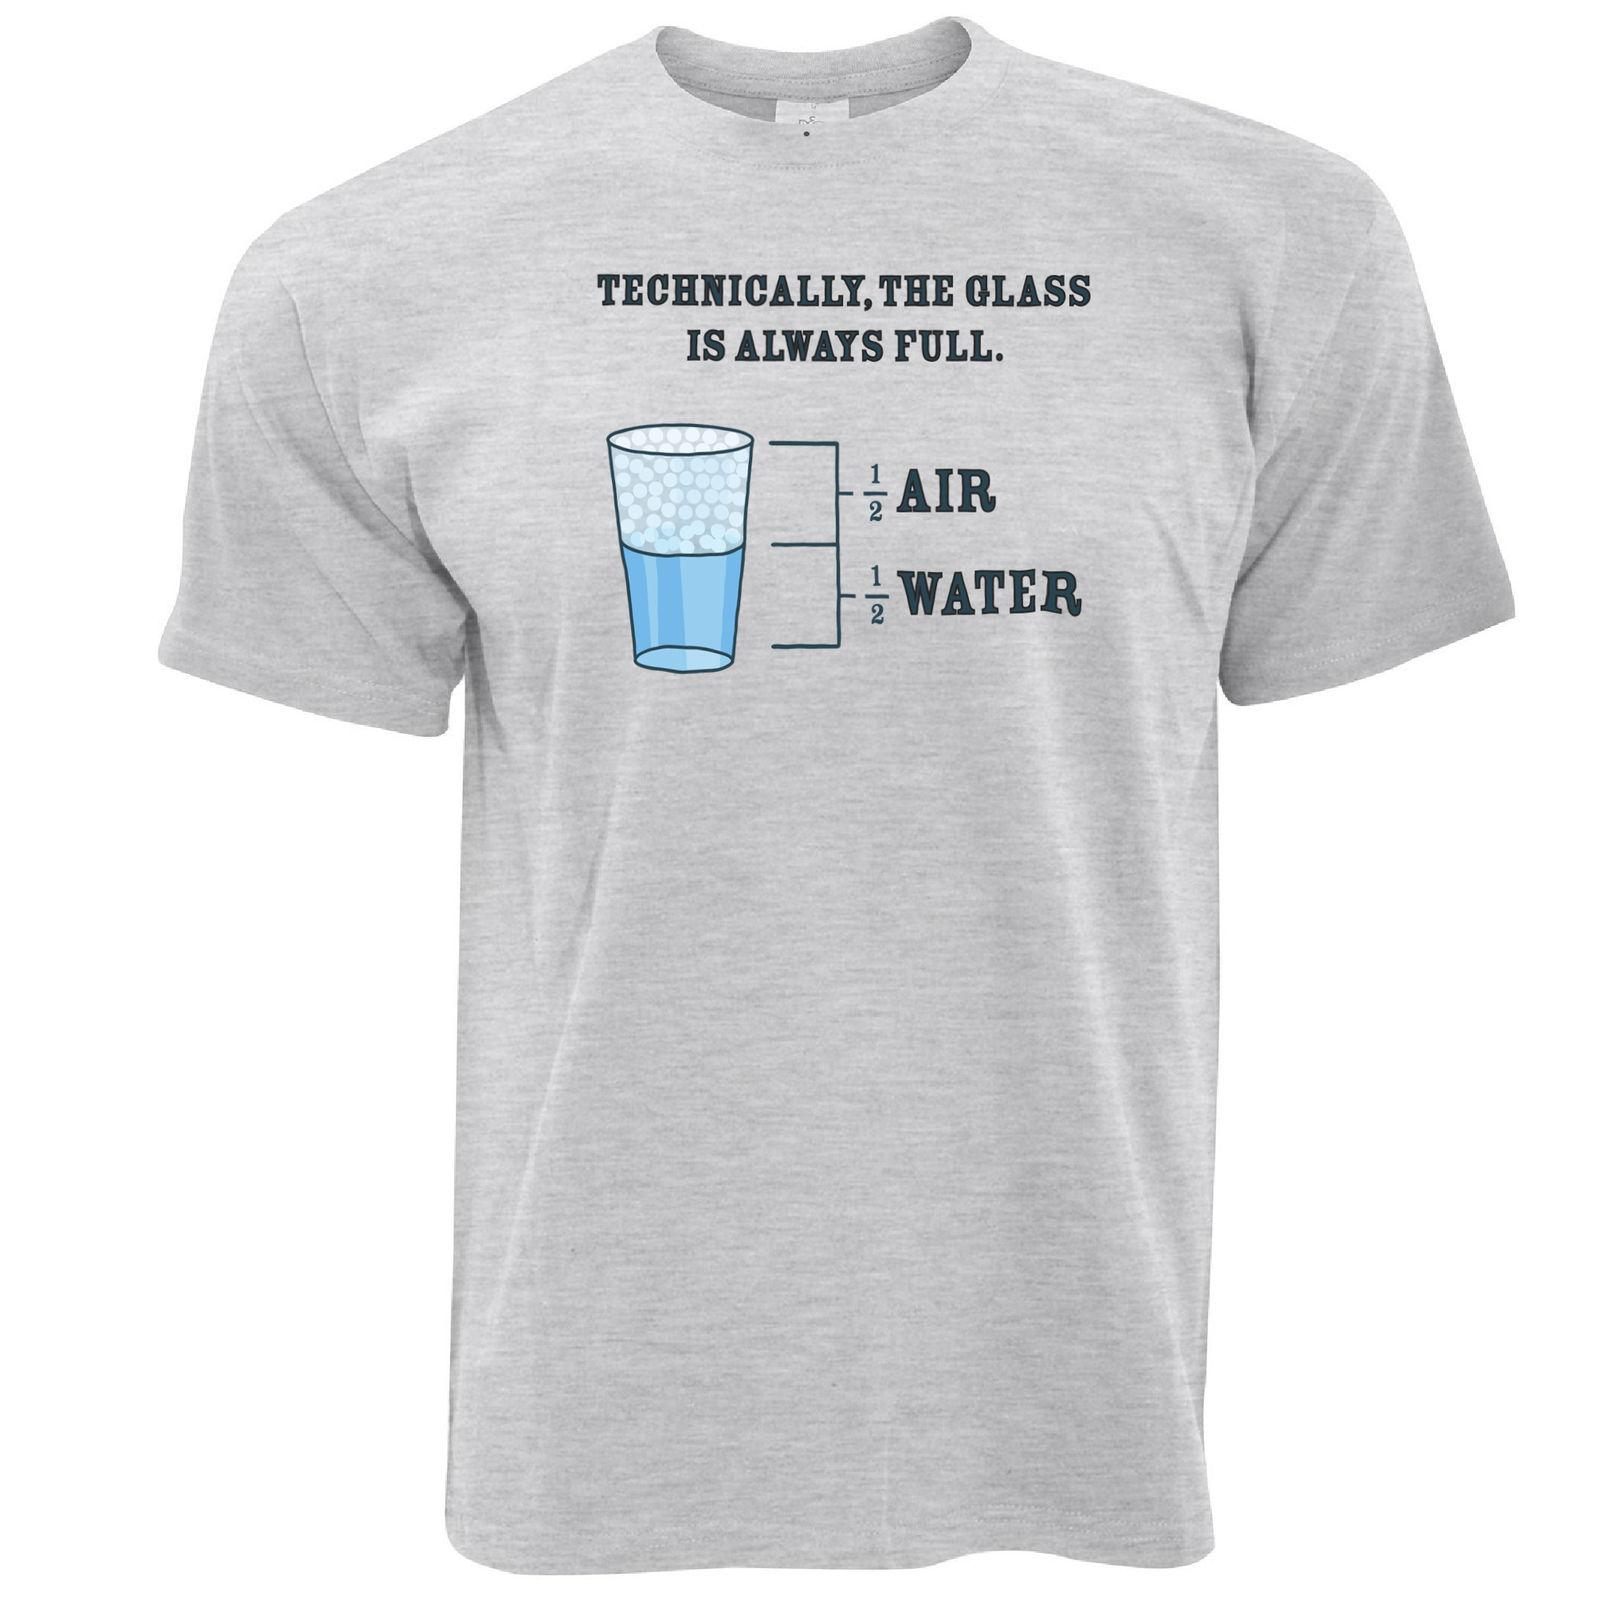 31360360 Novelty Philosophy T Shirt The Glass Is Always Full Technically Water Air Funny  T Shirt Designs Make A Tee Shirt From Oldshop77, $11.48| DHgate.Com